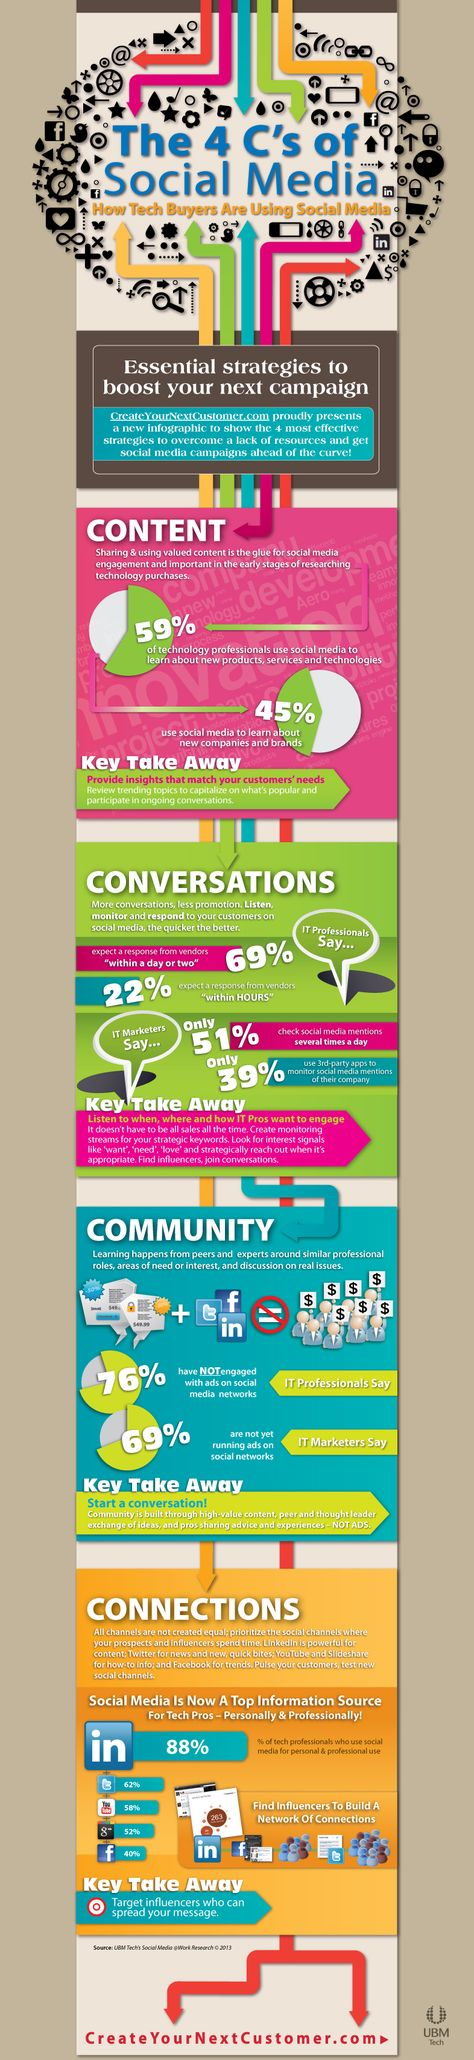 The 4 C's Of Social Media - Infographic